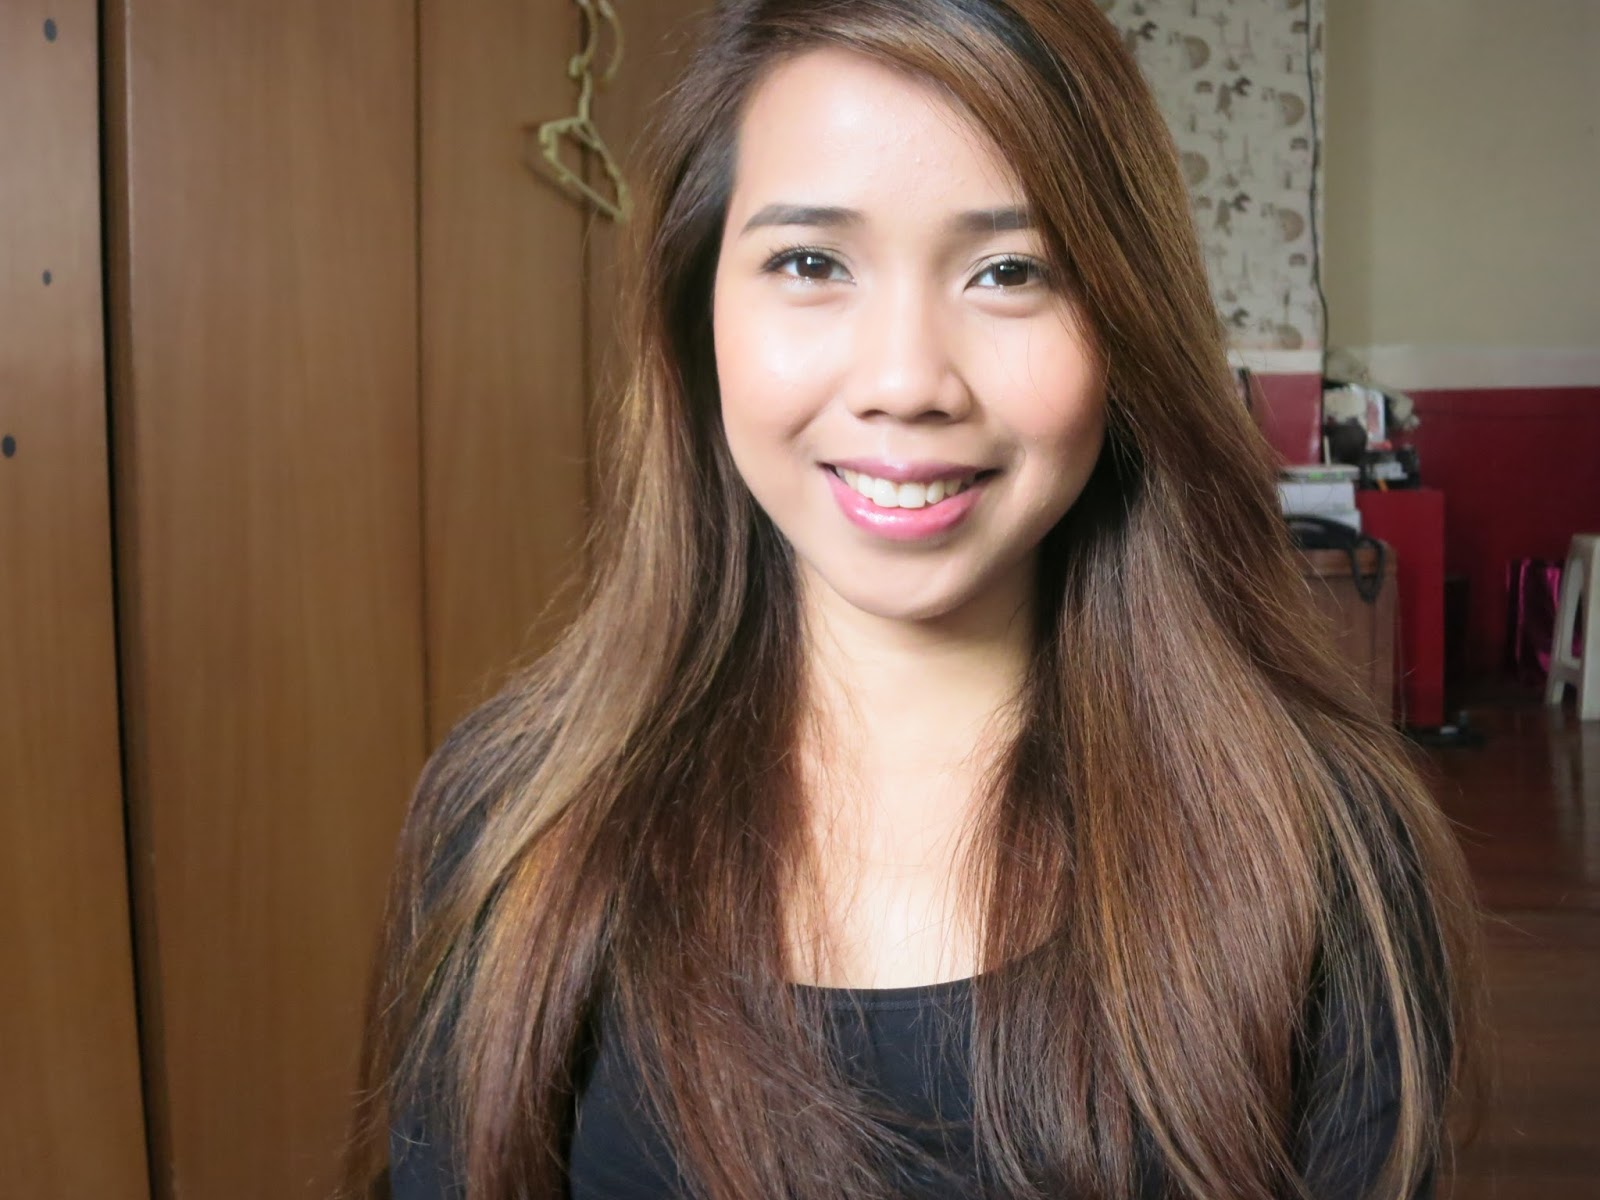 Mineeh11: Palty Hair Color Review